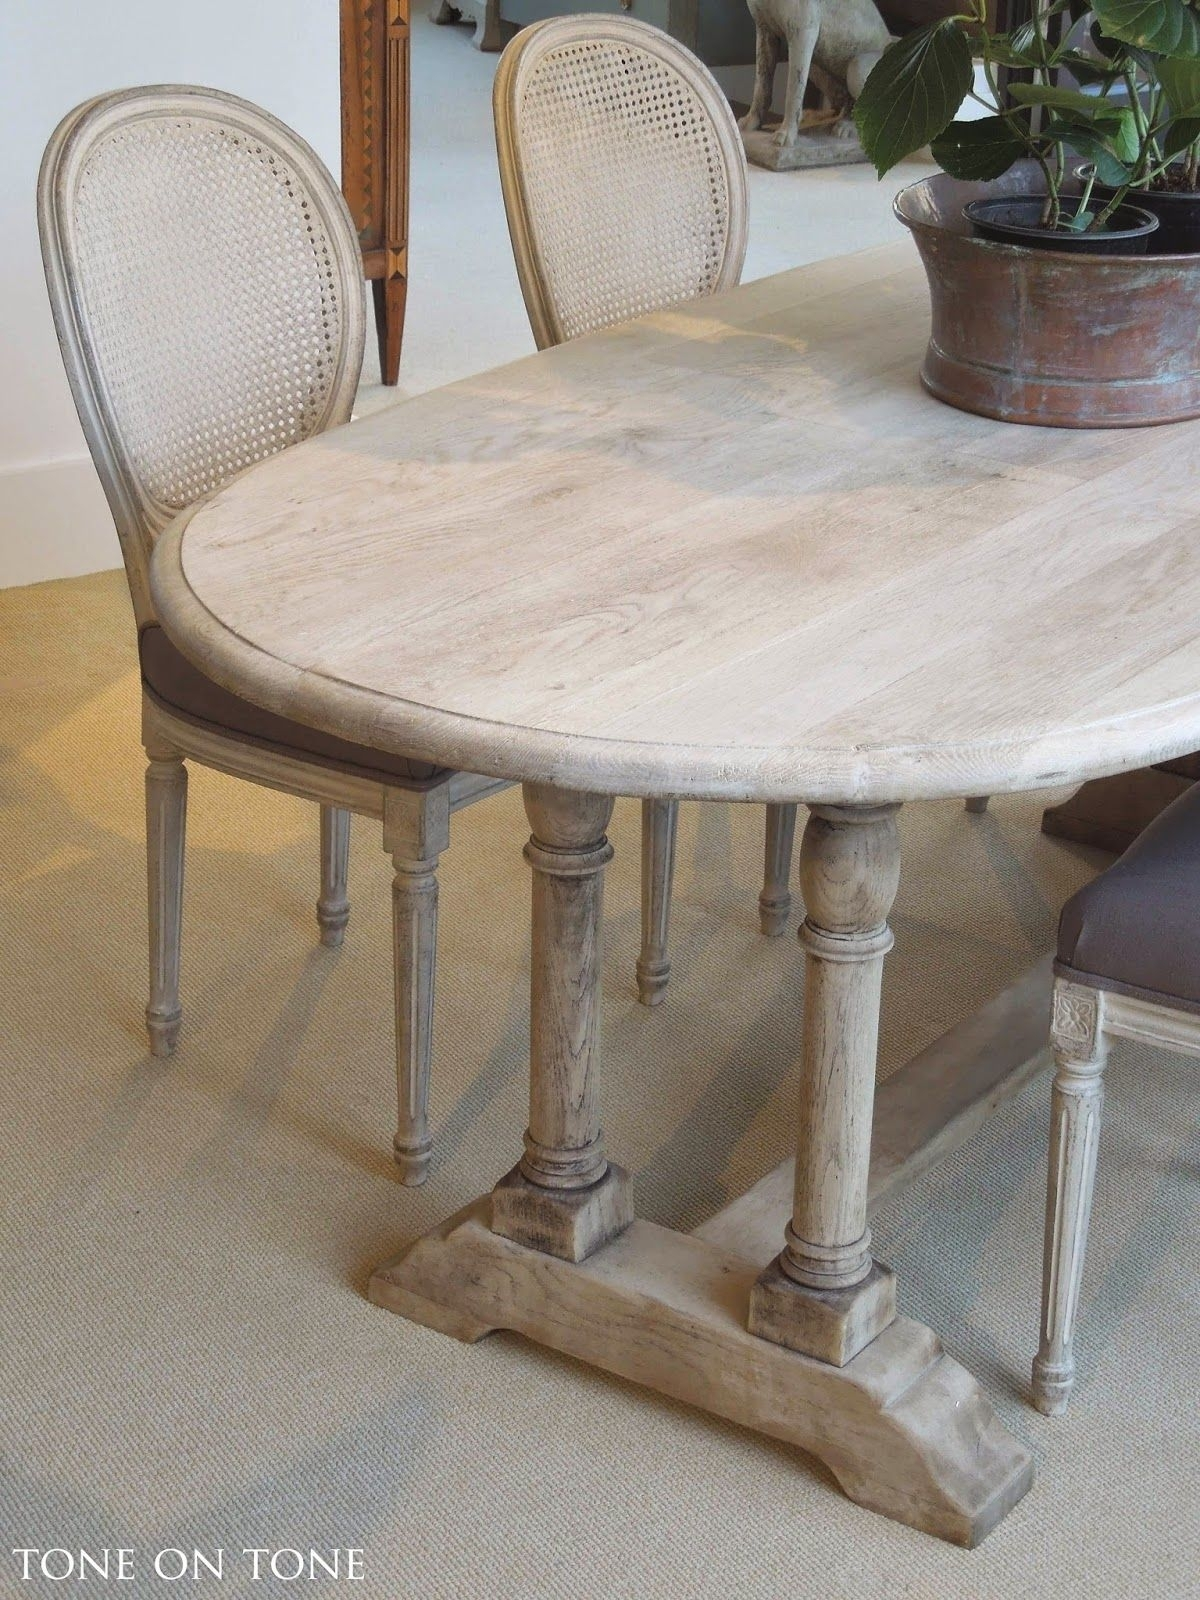 Here Is A 19Th Century Belgian Bleached Oak Dining / Kitchen Table In Best And Newest Helms 5 Piece Round Dining Sets With Side Chairs (View 7 of 20)